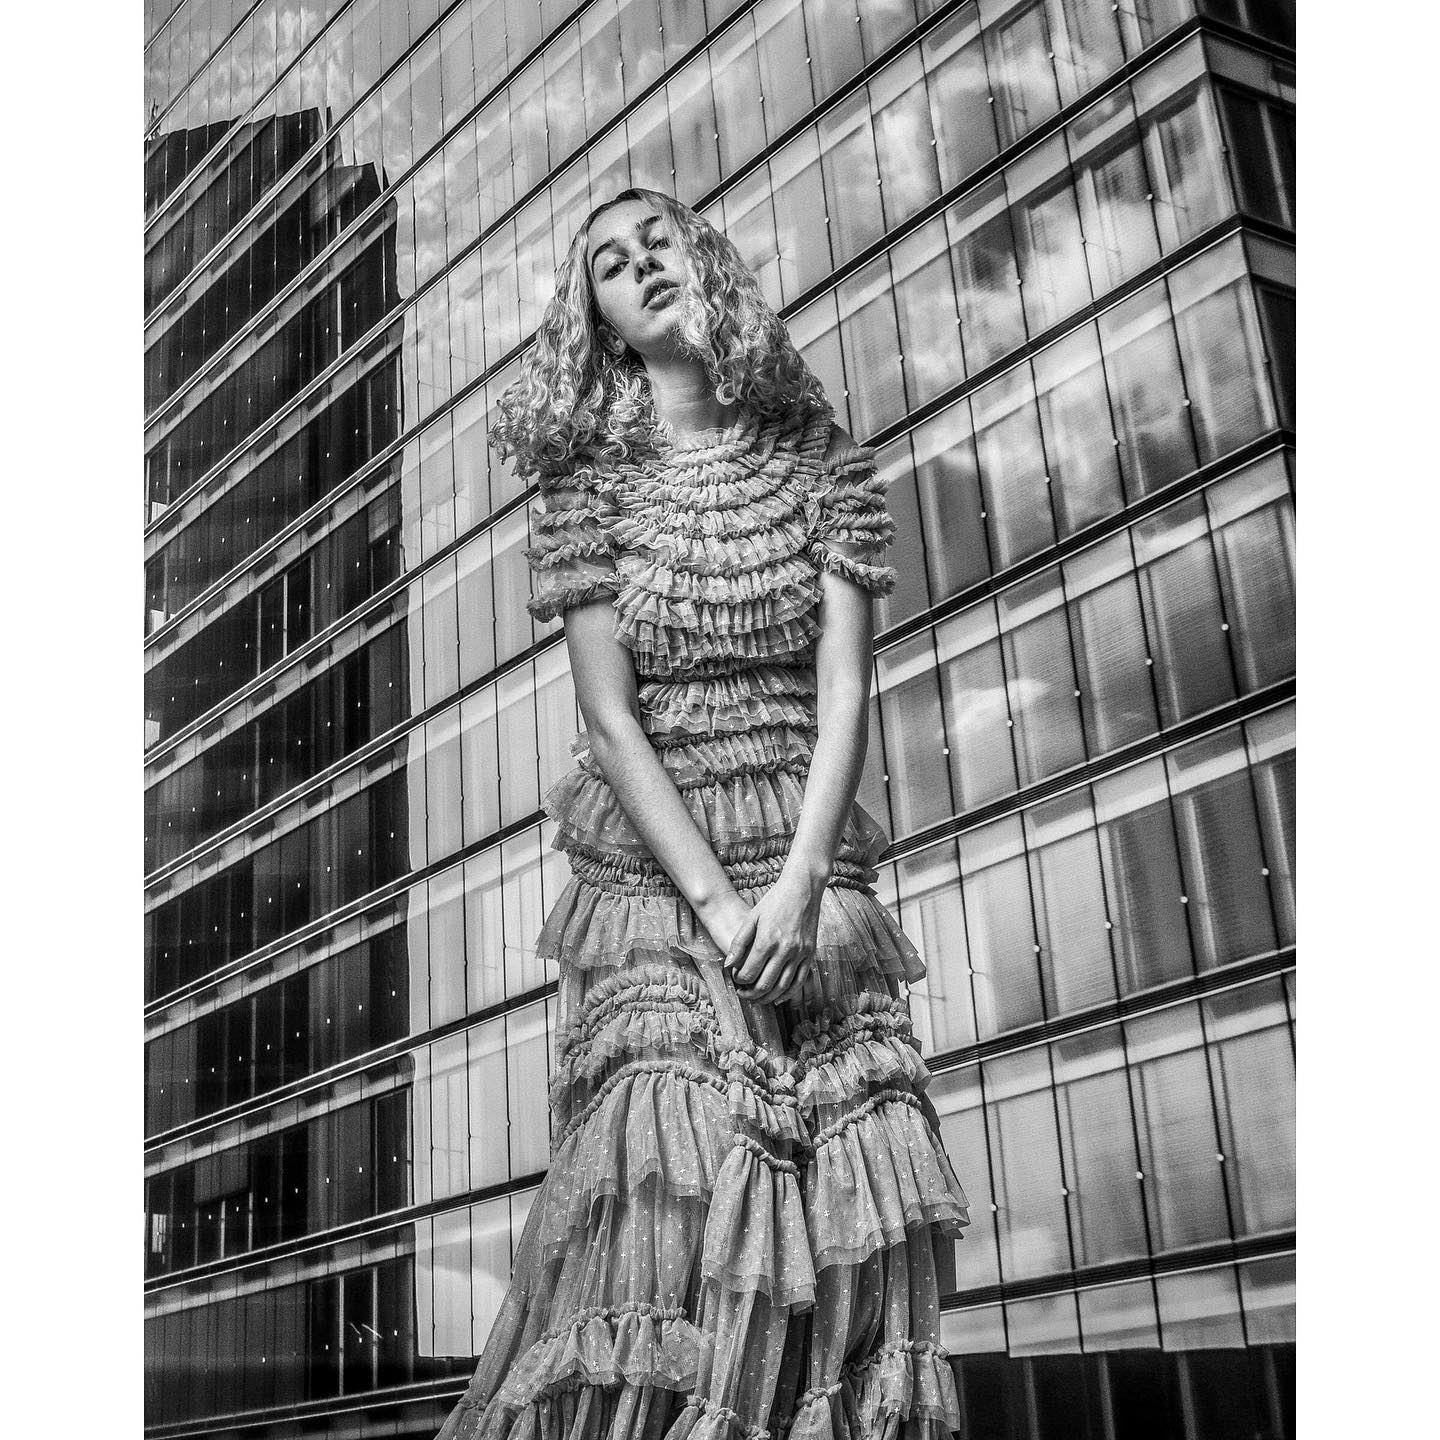 love photography c4c portrait germanblogger proimaging bw building skyscraper city